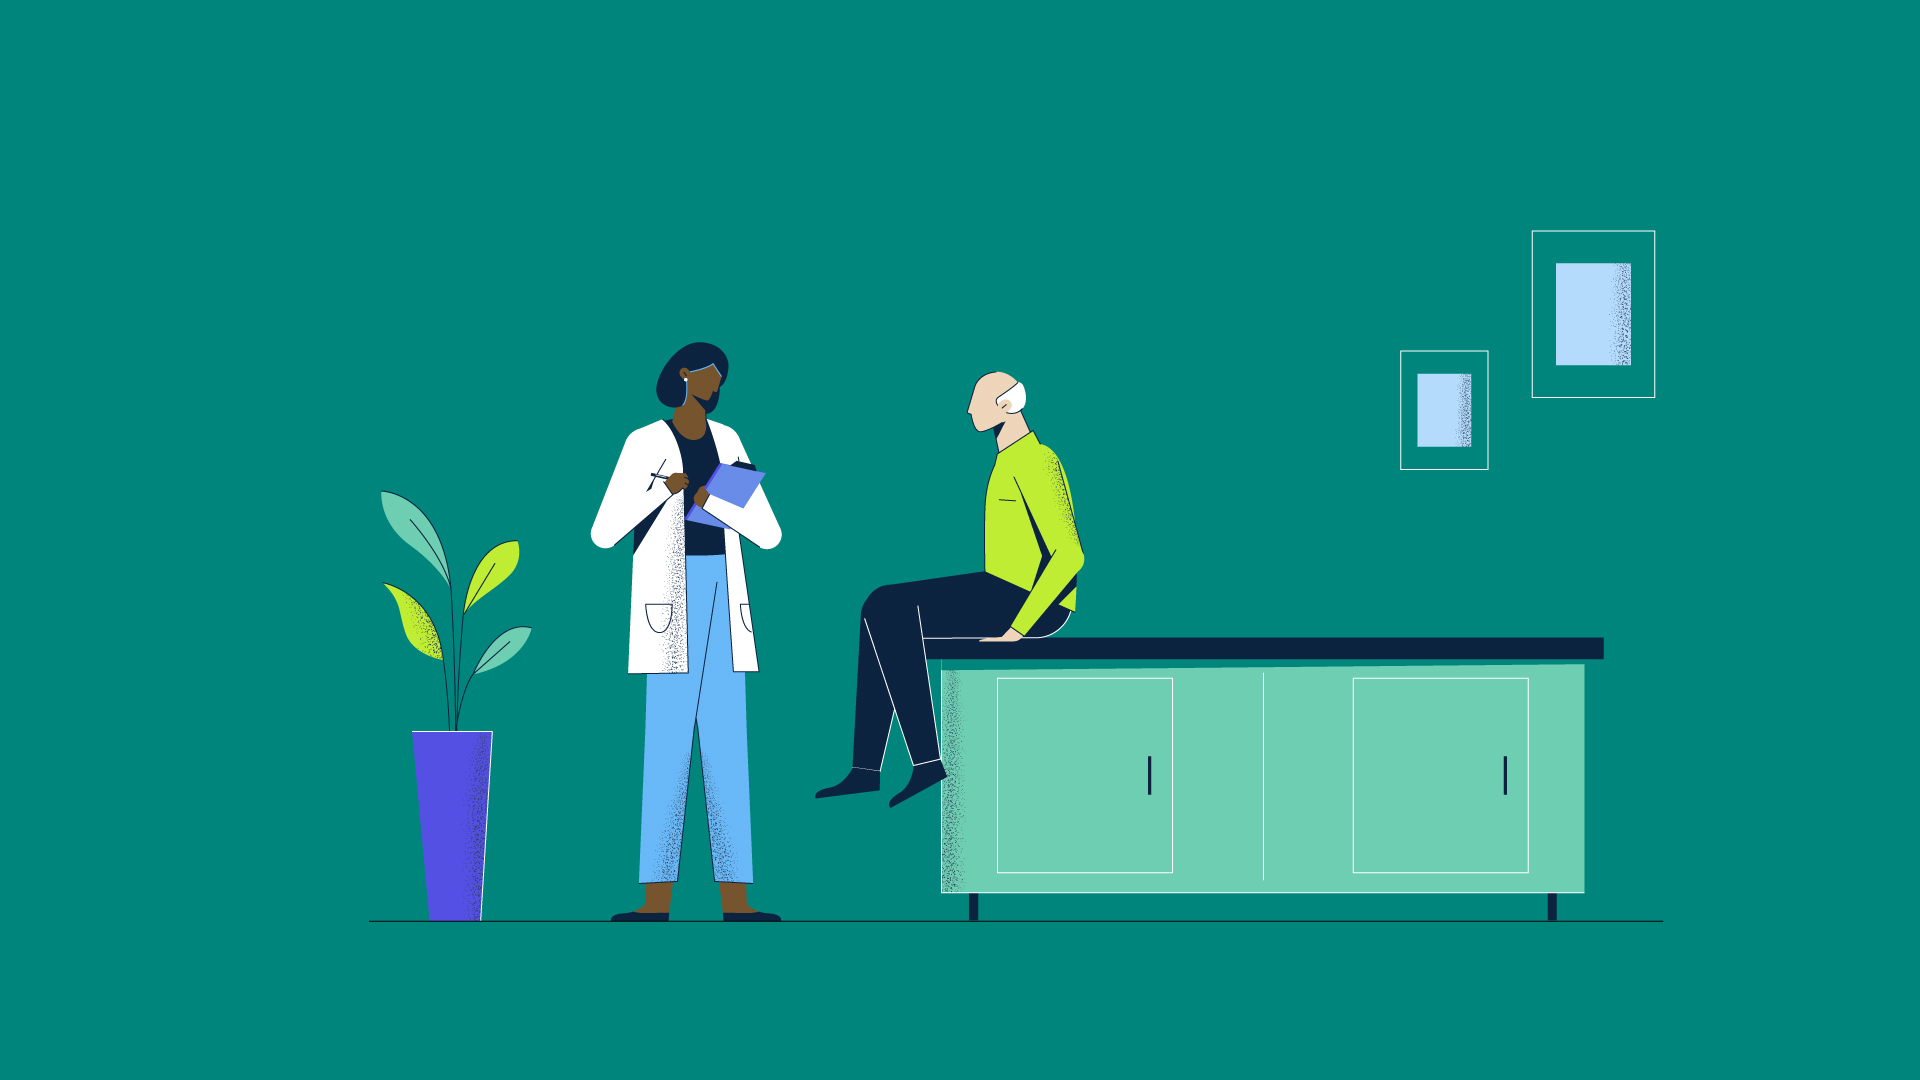 Illustration of a patient talking to doctor in office